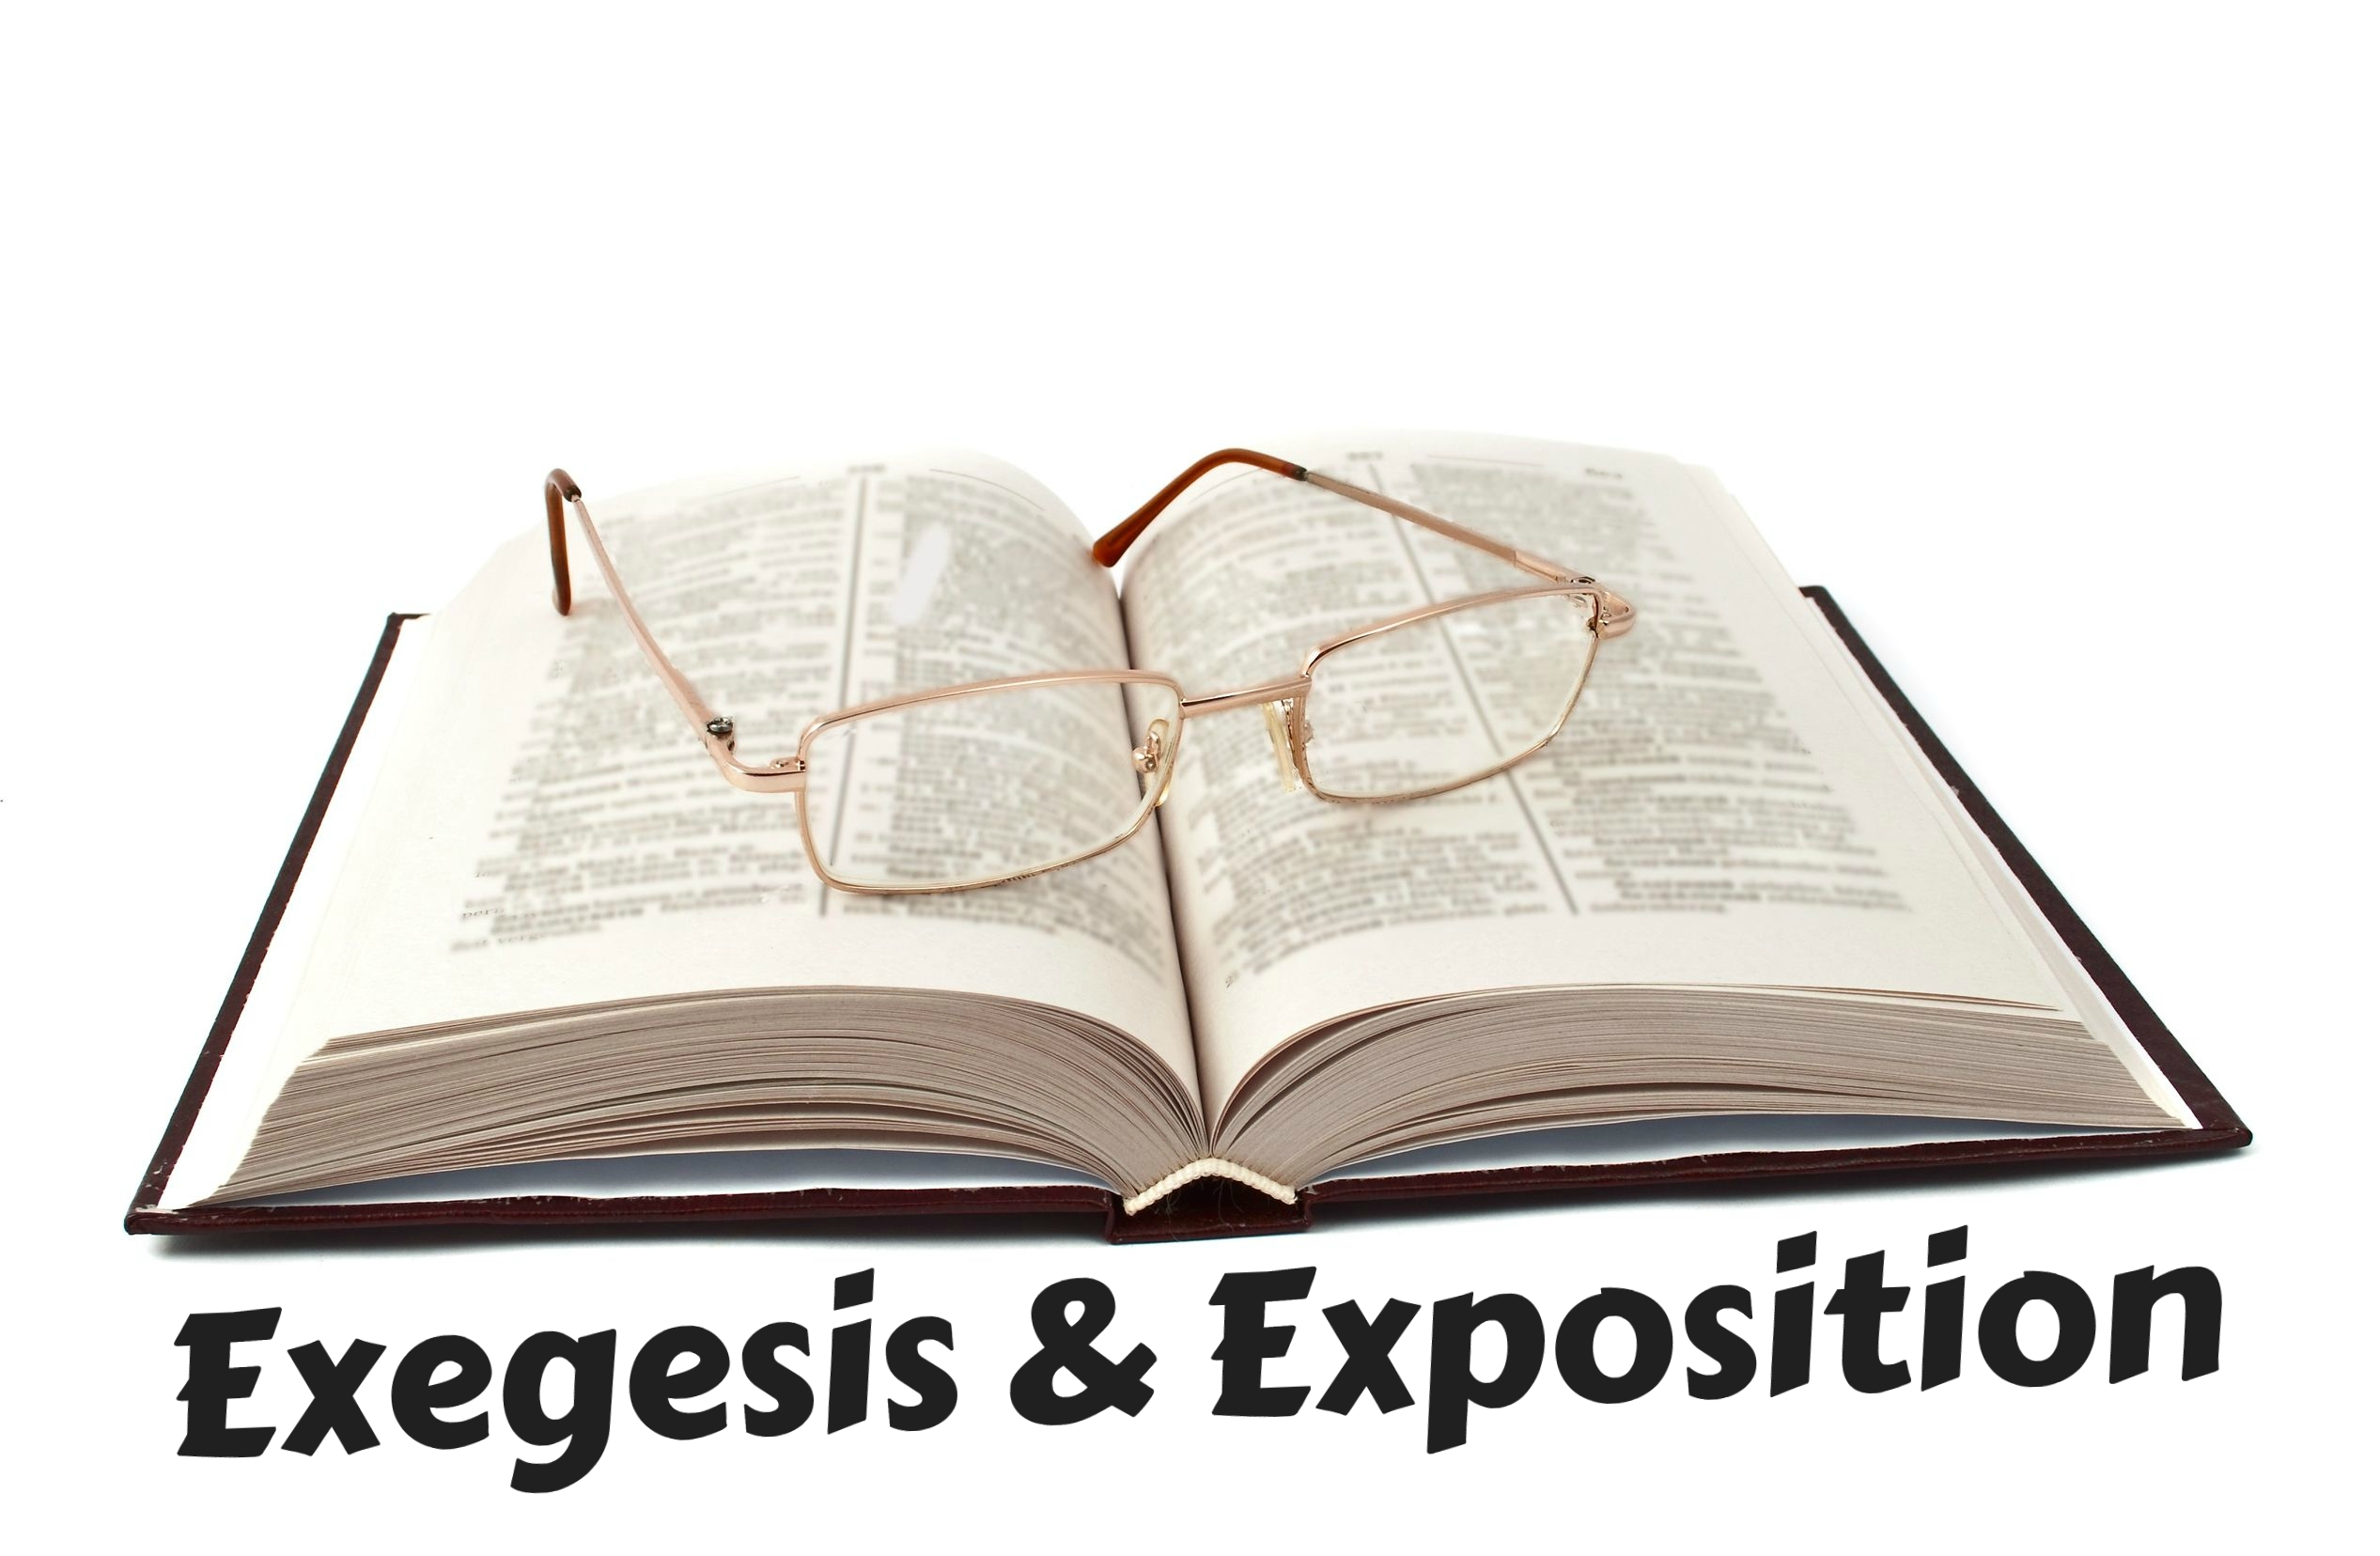 exegetical study of philippians 2 1 11 Exegetical study of philippians 2:1-11 3265 words | 14 pages exegetical study of philippians 2:1-11 the purpose of this paper is to perform a thorough exegetical analysis of philippians 2:1-11 in order to accomplish this purpose, the basic contents of the passage will be surveyed.